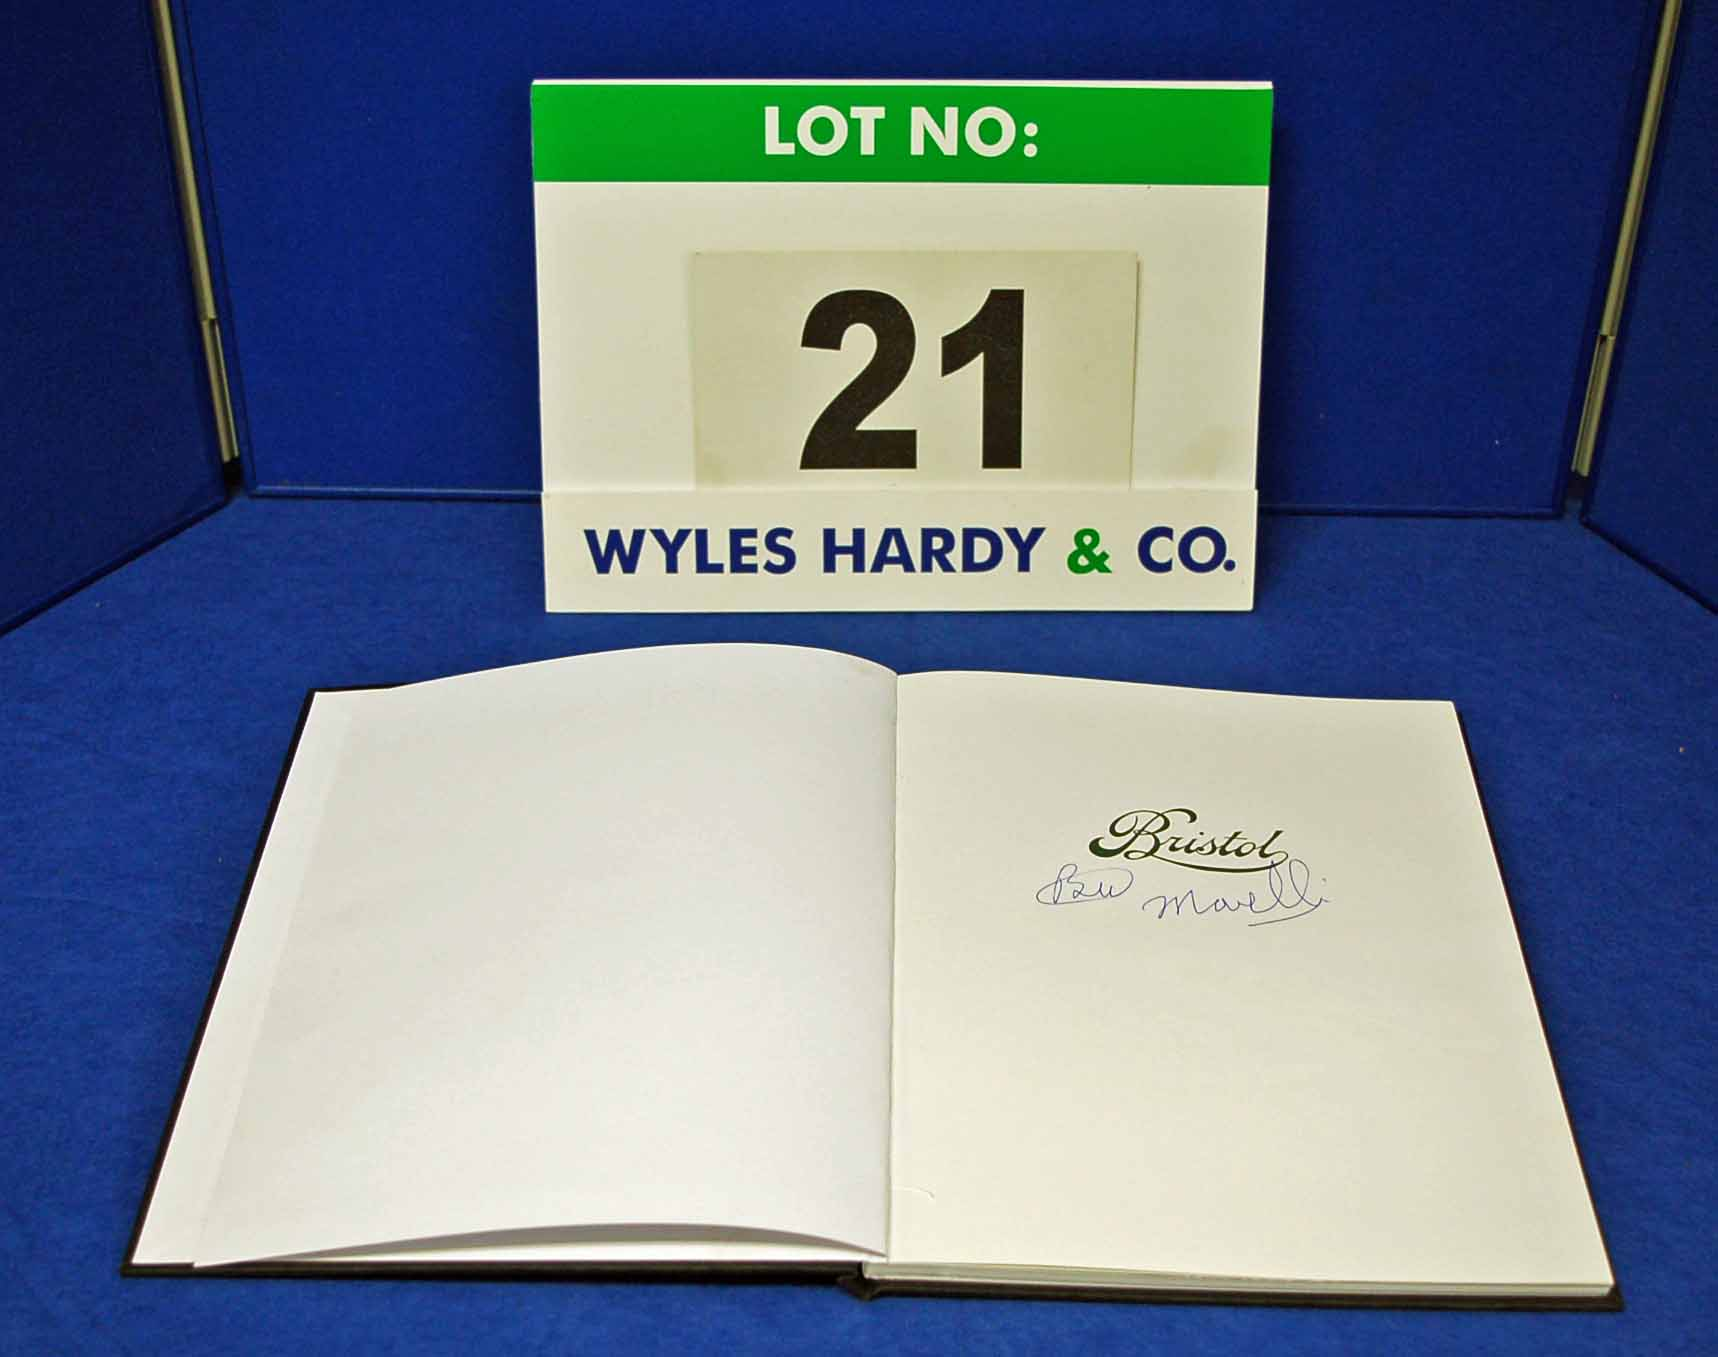 A Copy of Bristol (Version 2) Chronicling the History of Bristol Cars Ltd., signed by Brian - Image 2 of 2